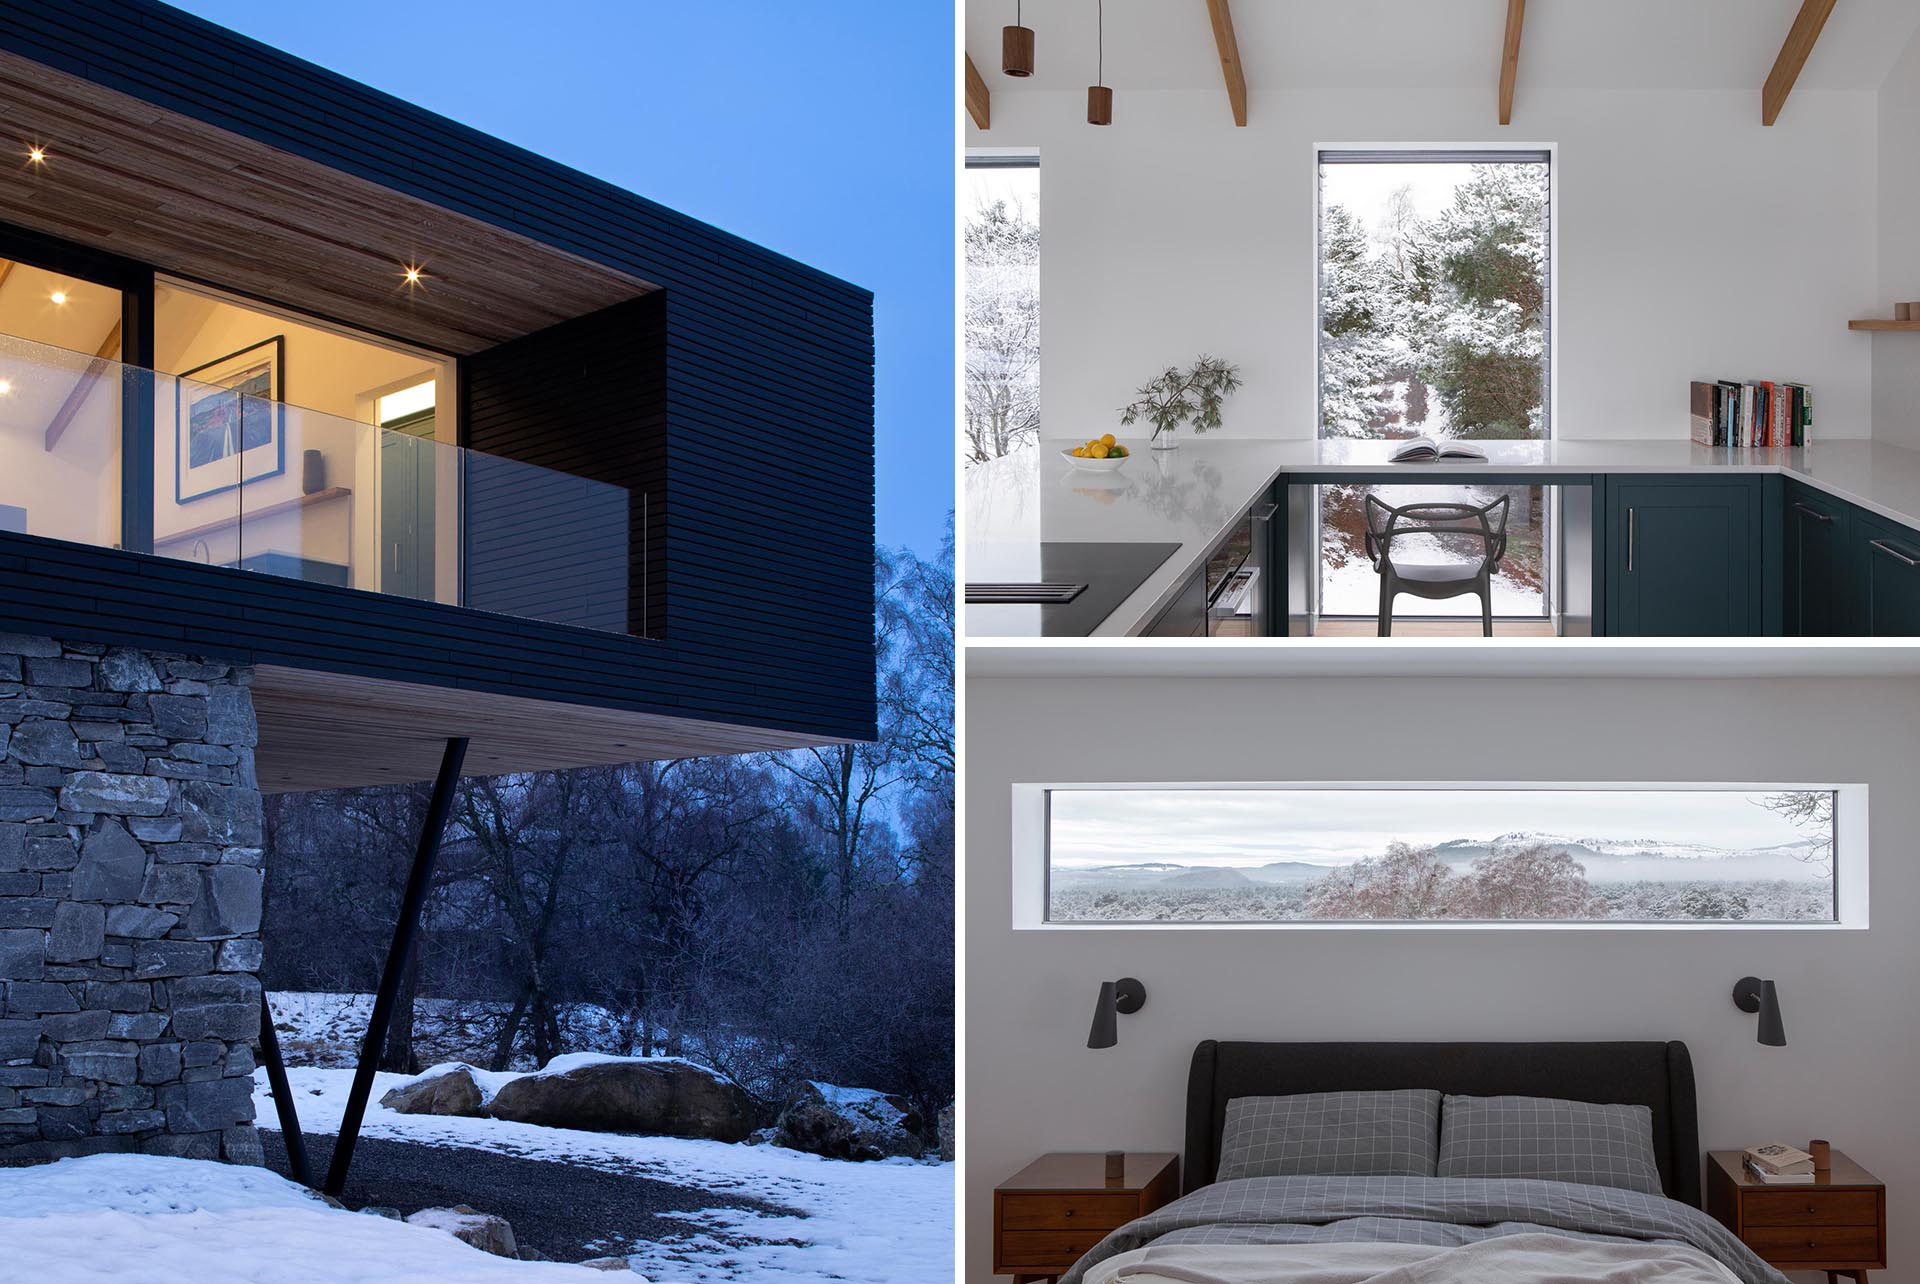 A modern home addition with perfectly positioned windows that frame the views like artwork.